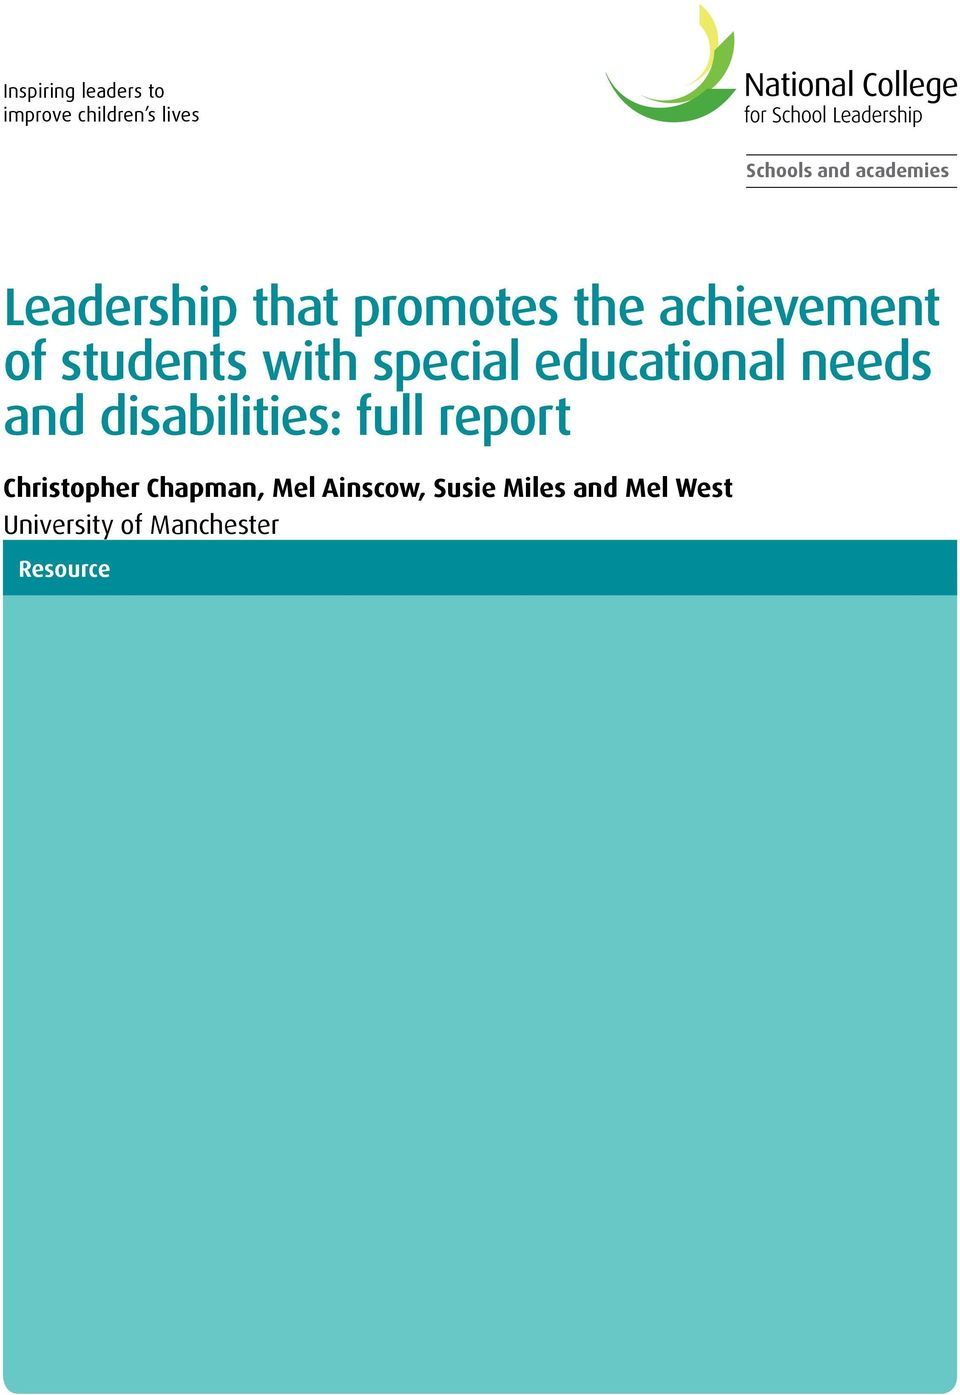 educational needs and disabilities: full report Christopher Chapman,